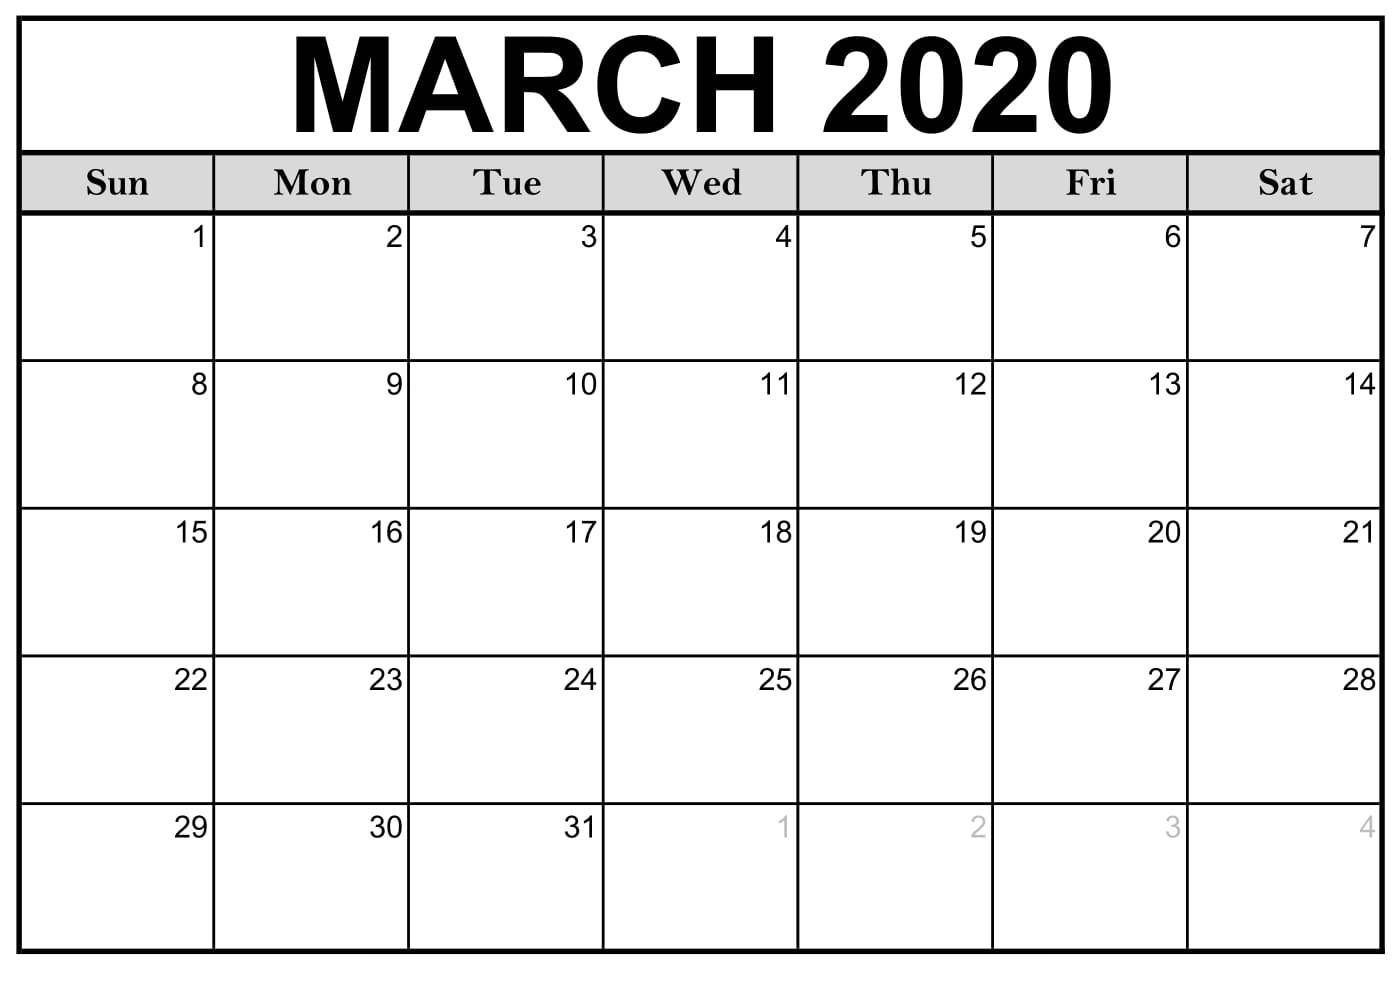 Fillable March 2020 Calendar Template Word, Pdf, Excel for Printable Fill In Calendar 2020